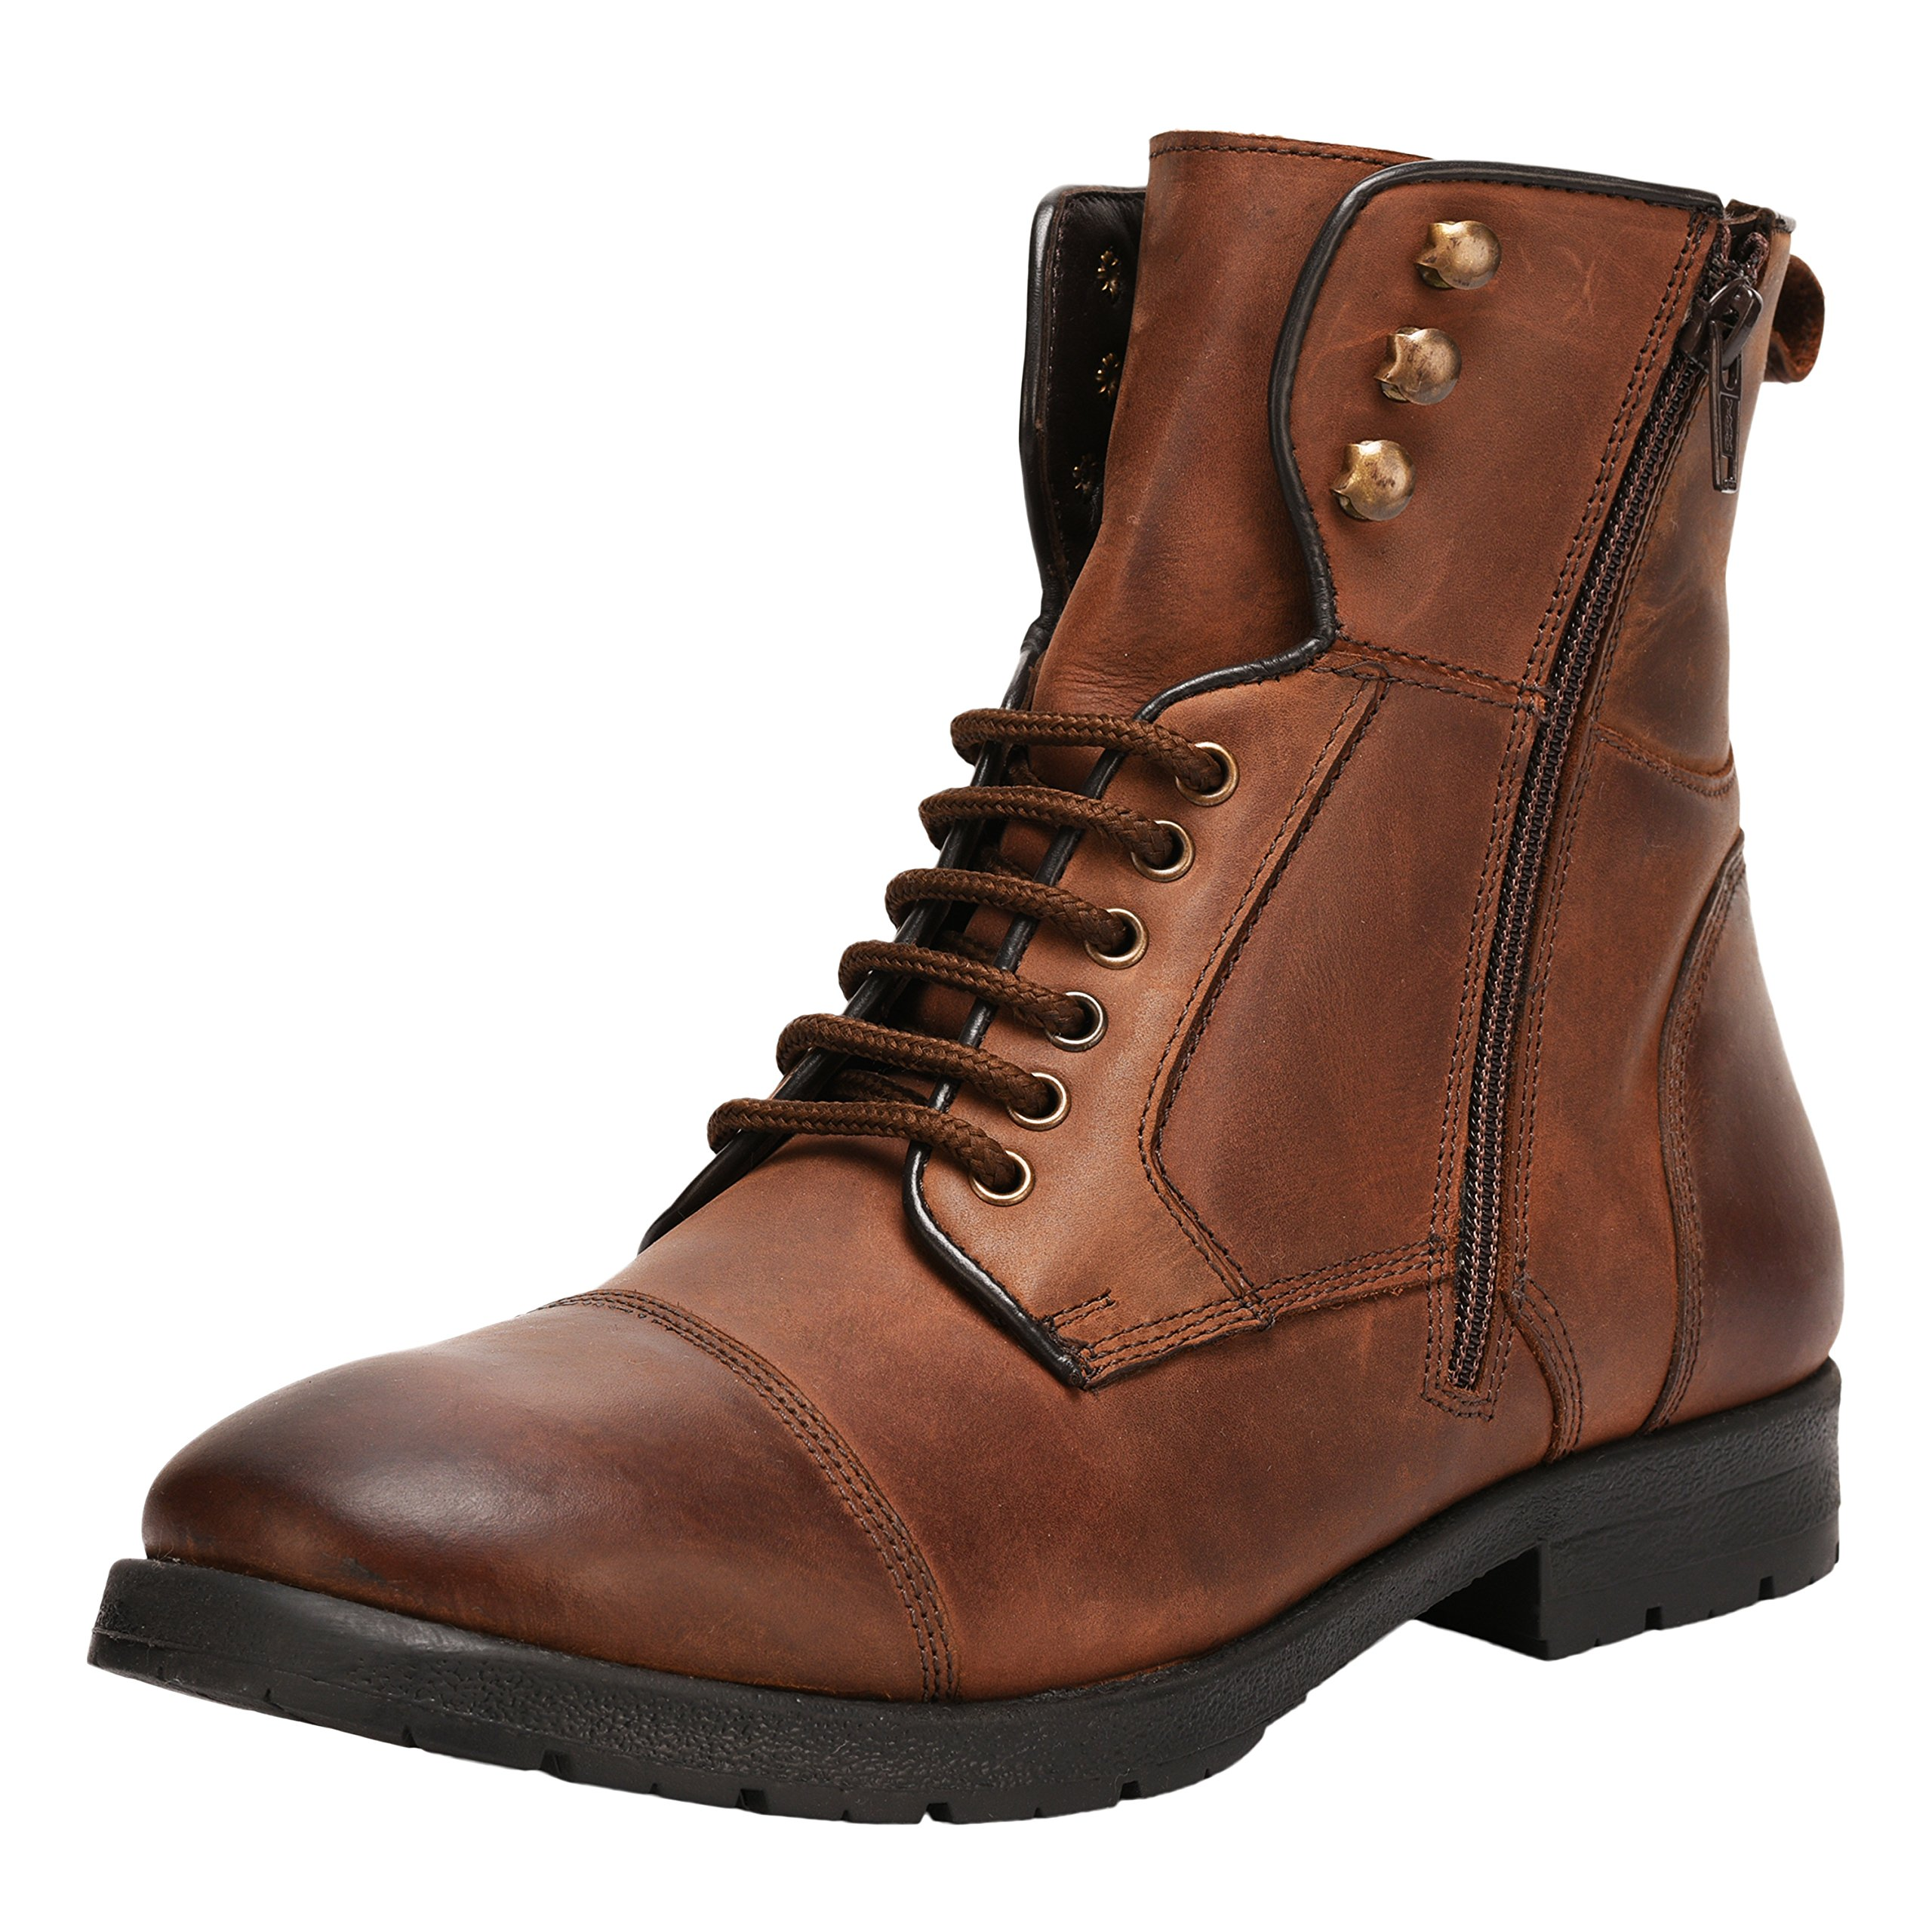 Liberty Men's Genuine Leather Lace up Closure Fashion Ankle Boots 1.5 inch Heels